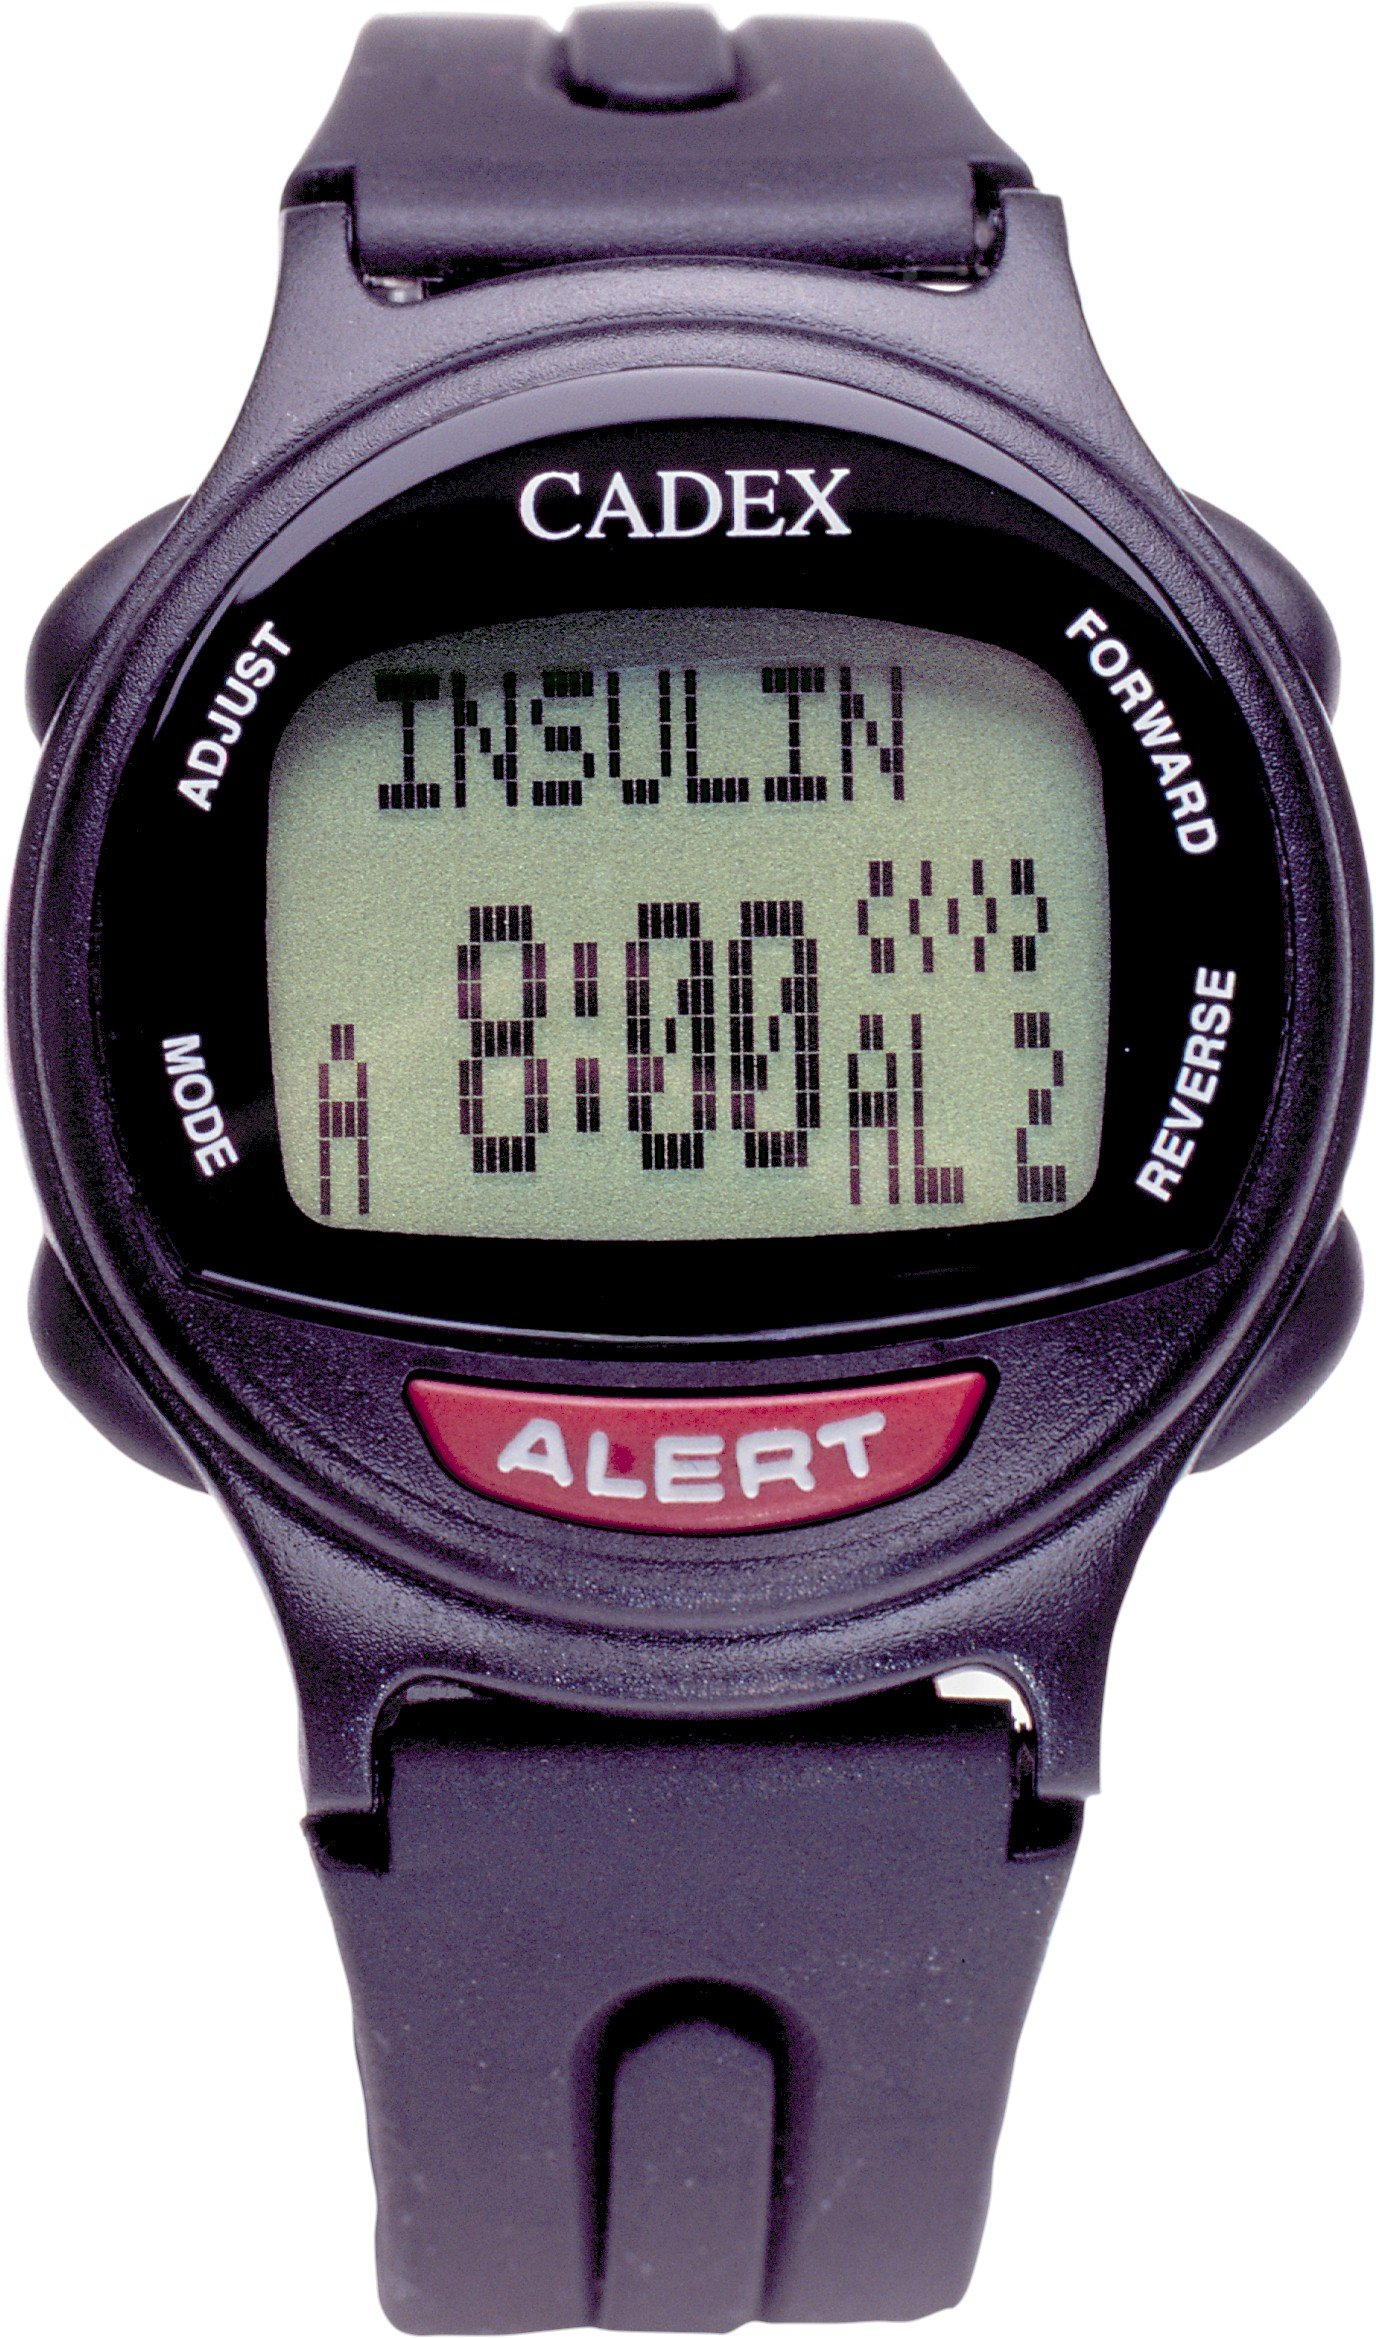 12 Alarm e-pill Medication Reminder Watch. CADEX Alarm Watch with Medical Alert Identification ID. BLACK watch.